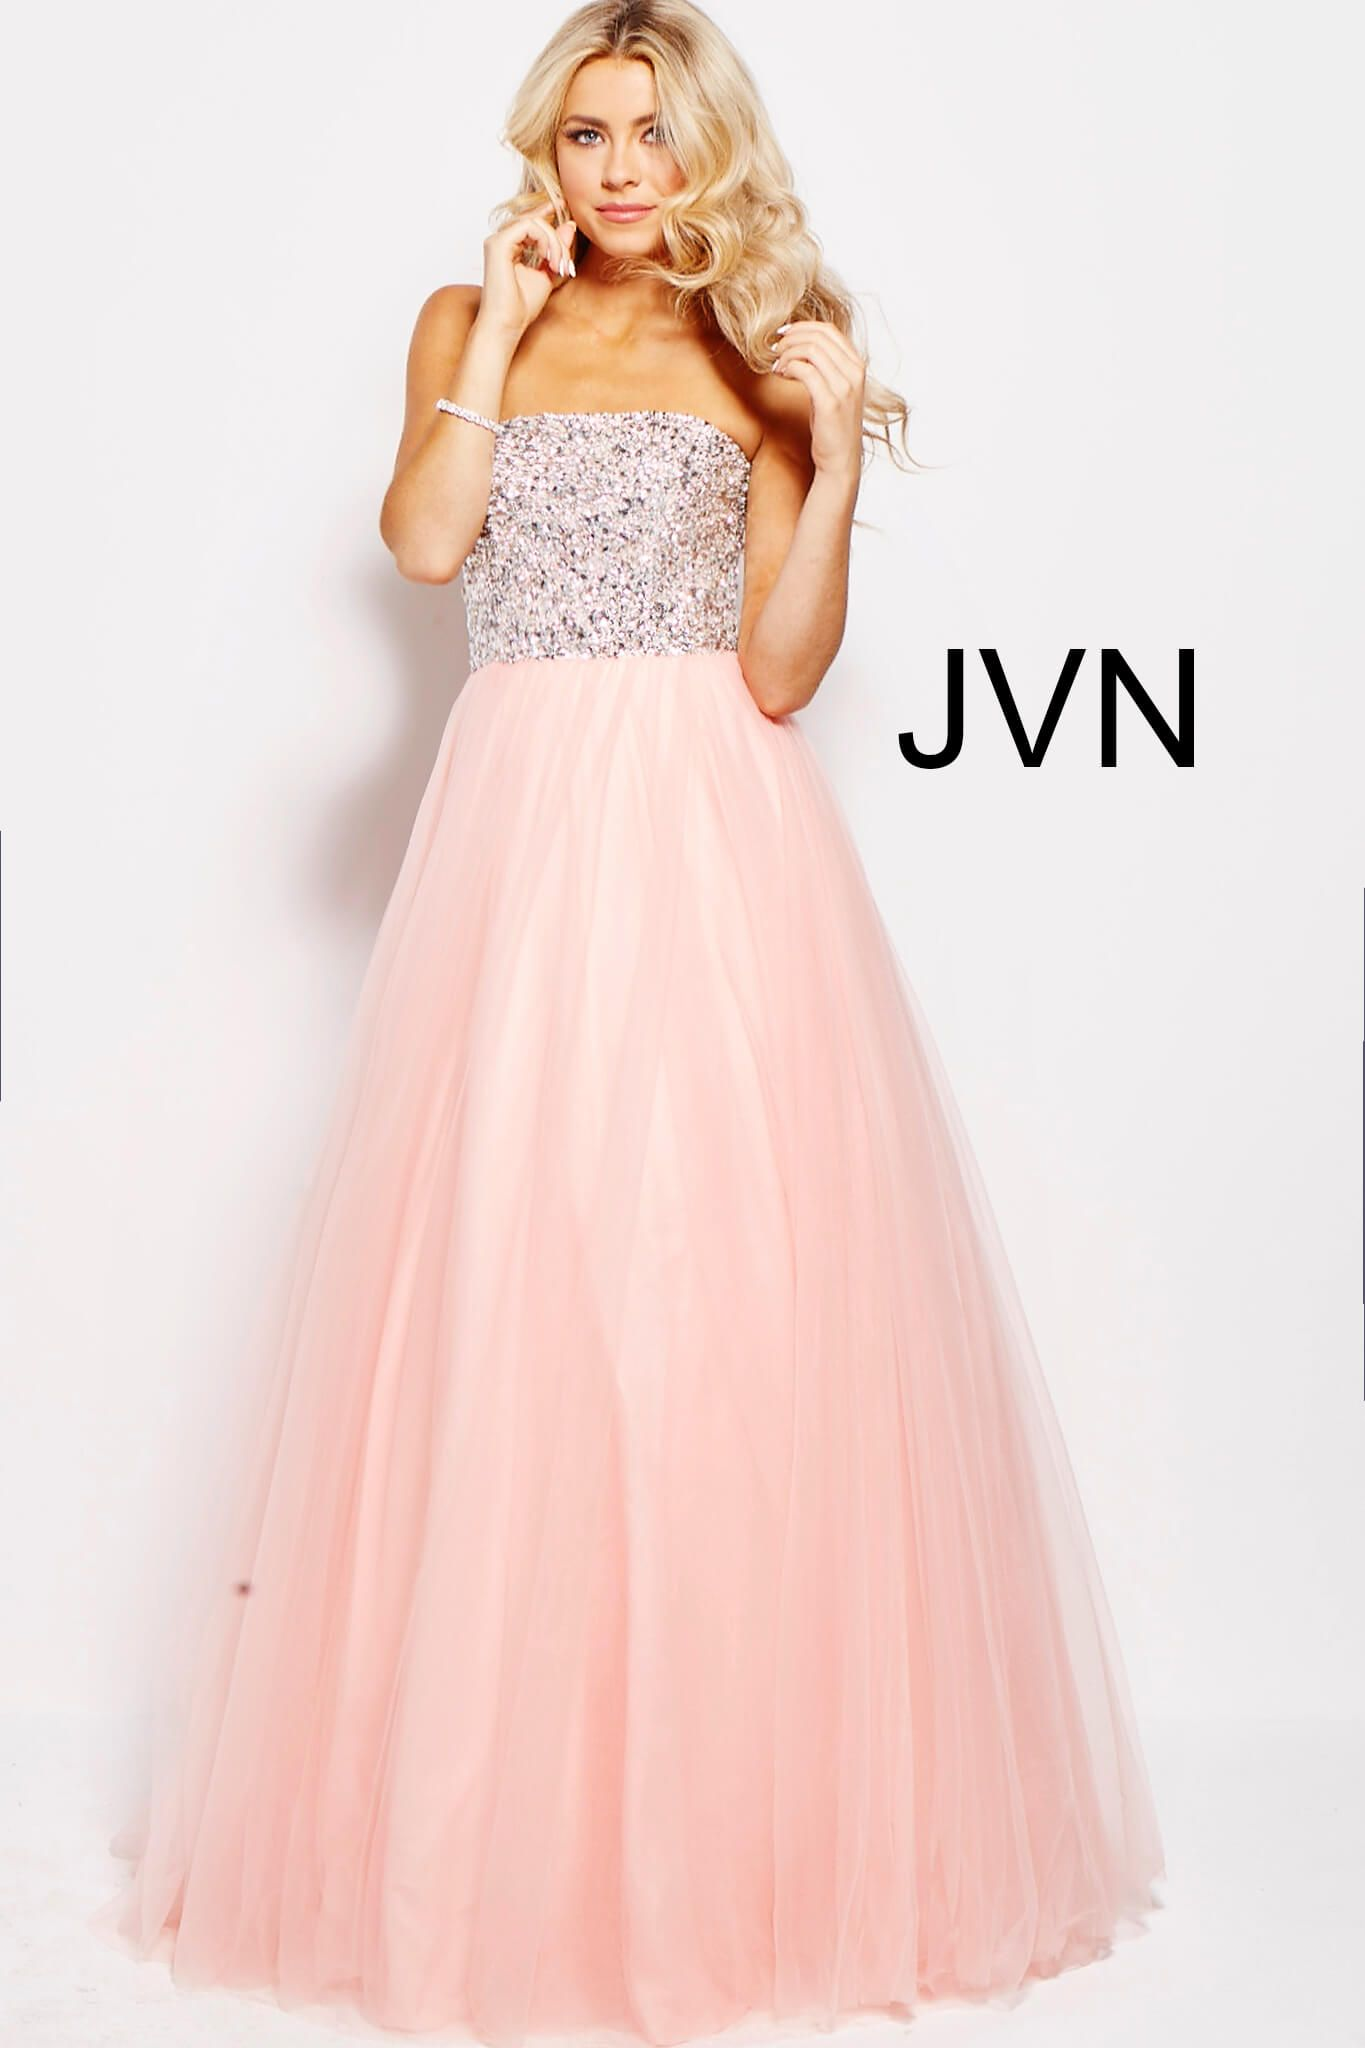 JVN by Jovani JVN52131 | Prom, Prom dress stores and Check